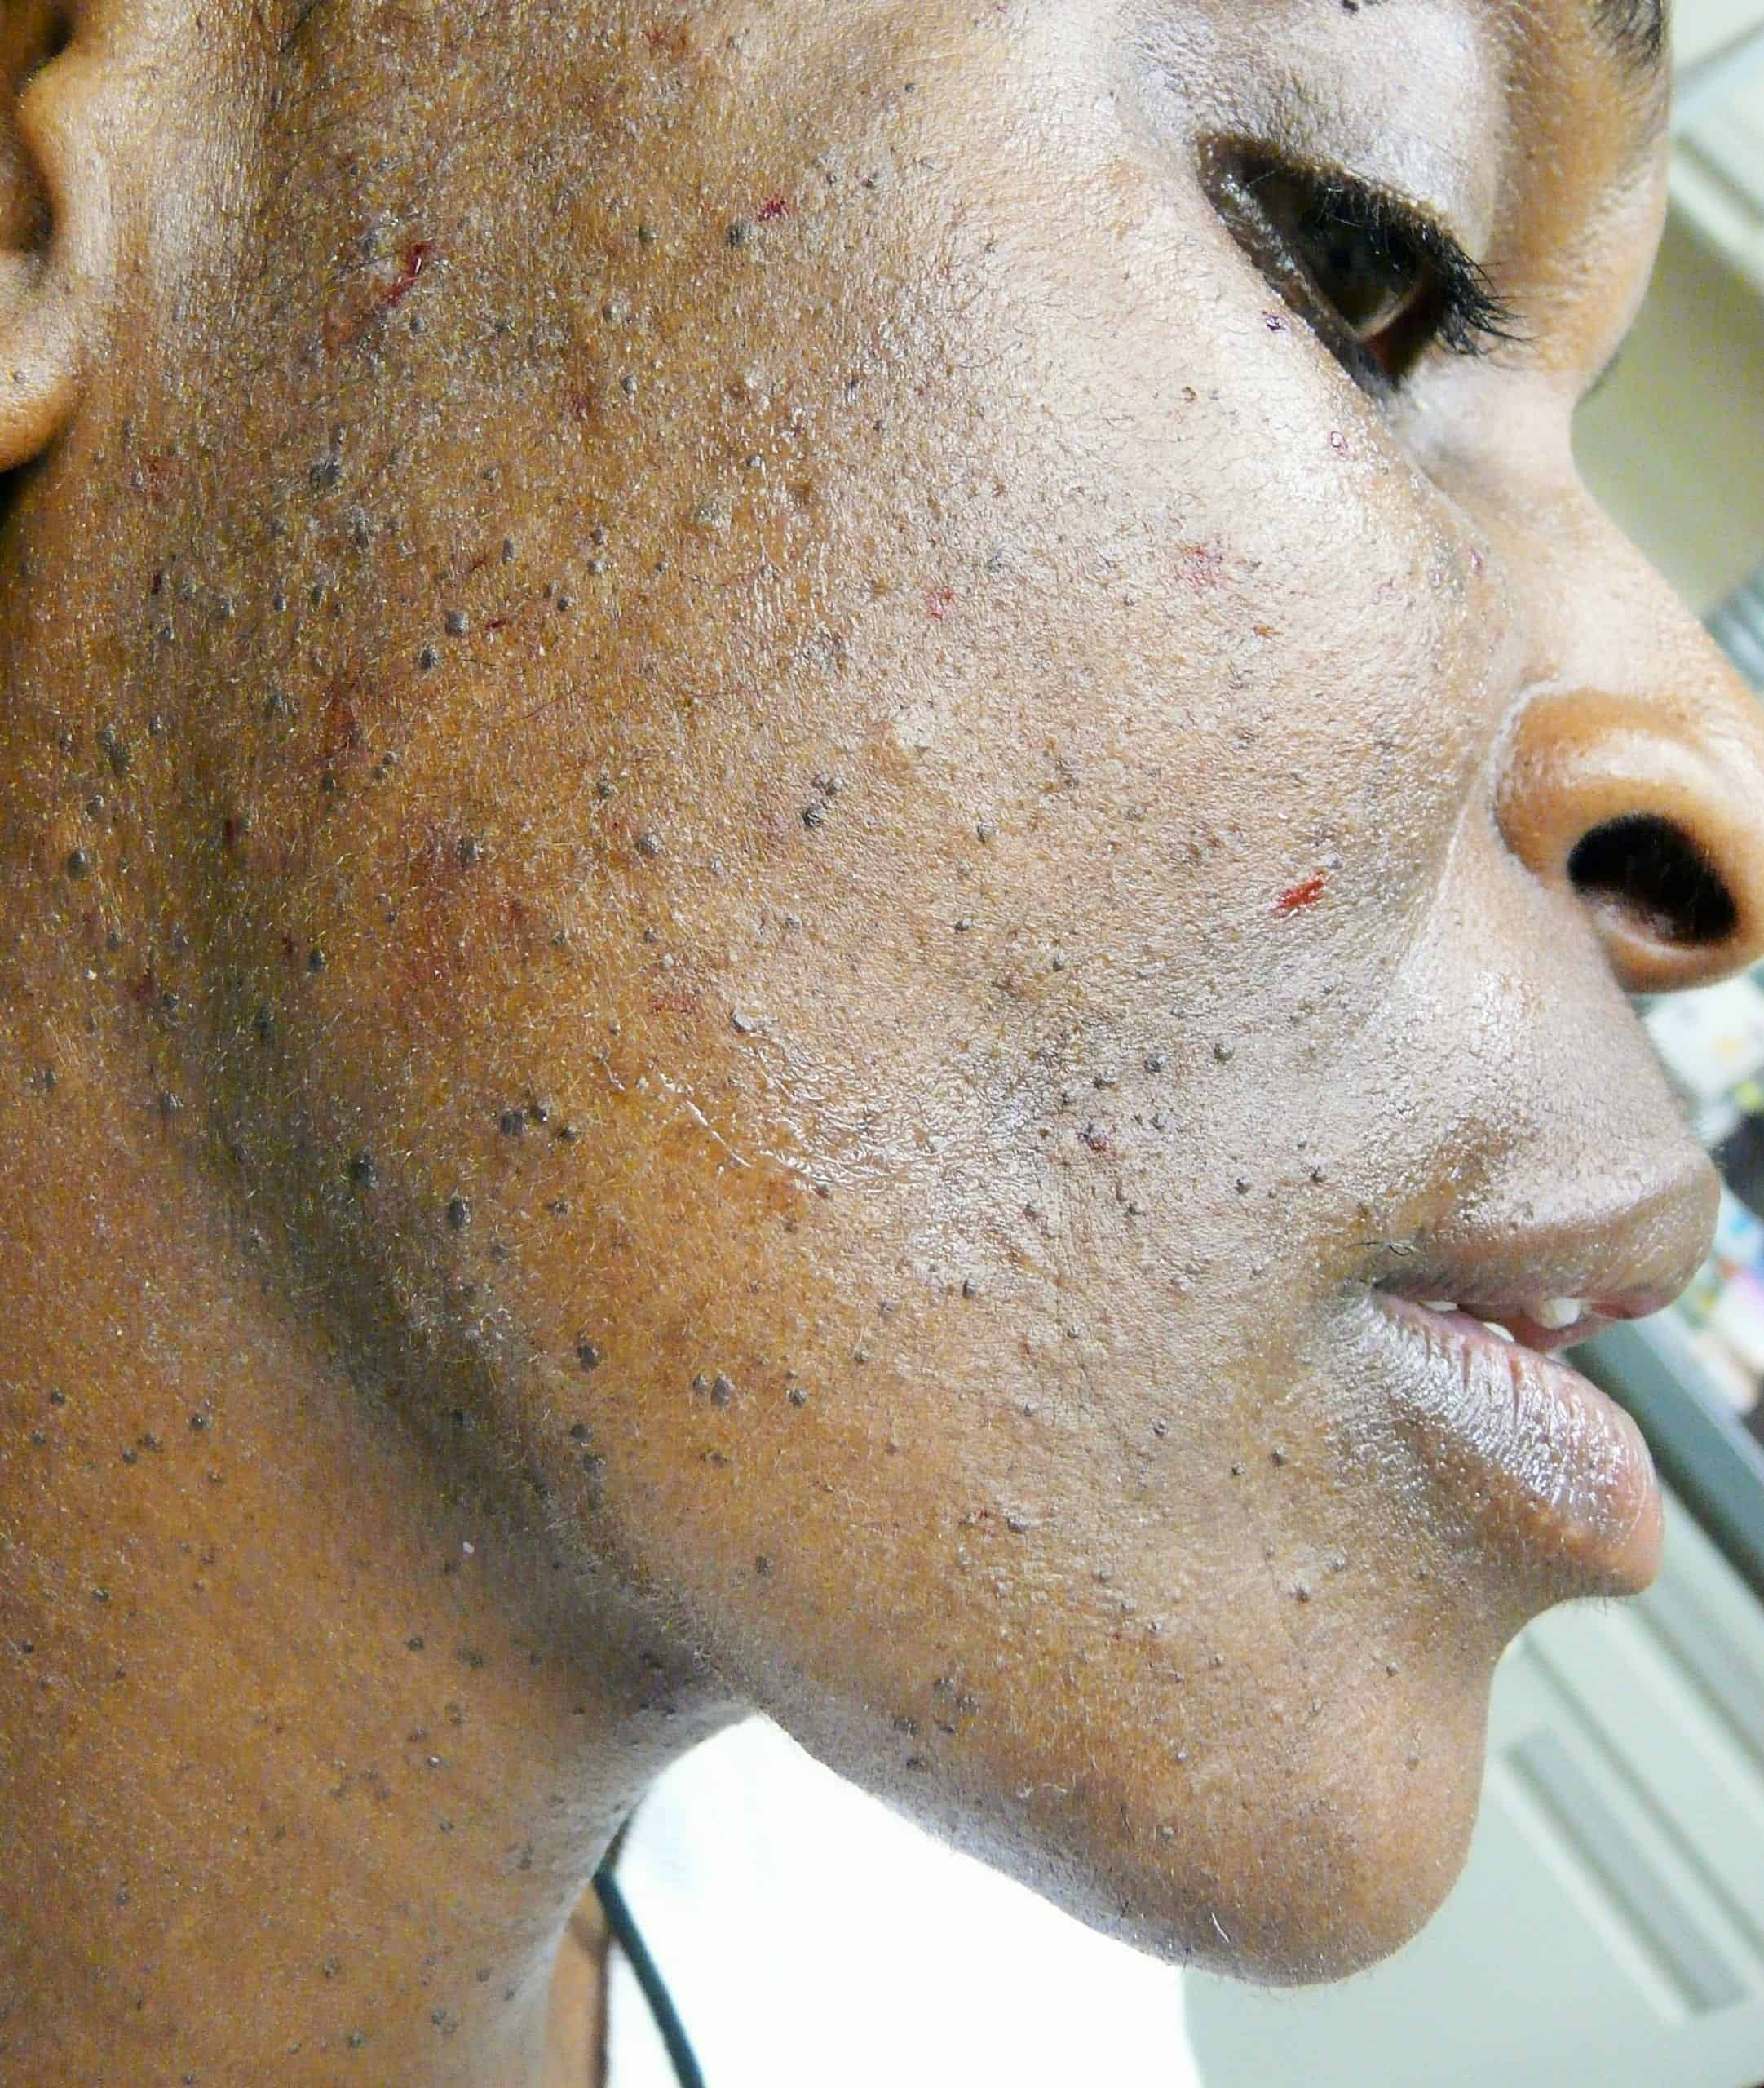 Photo showing lack of DPN skin prevention